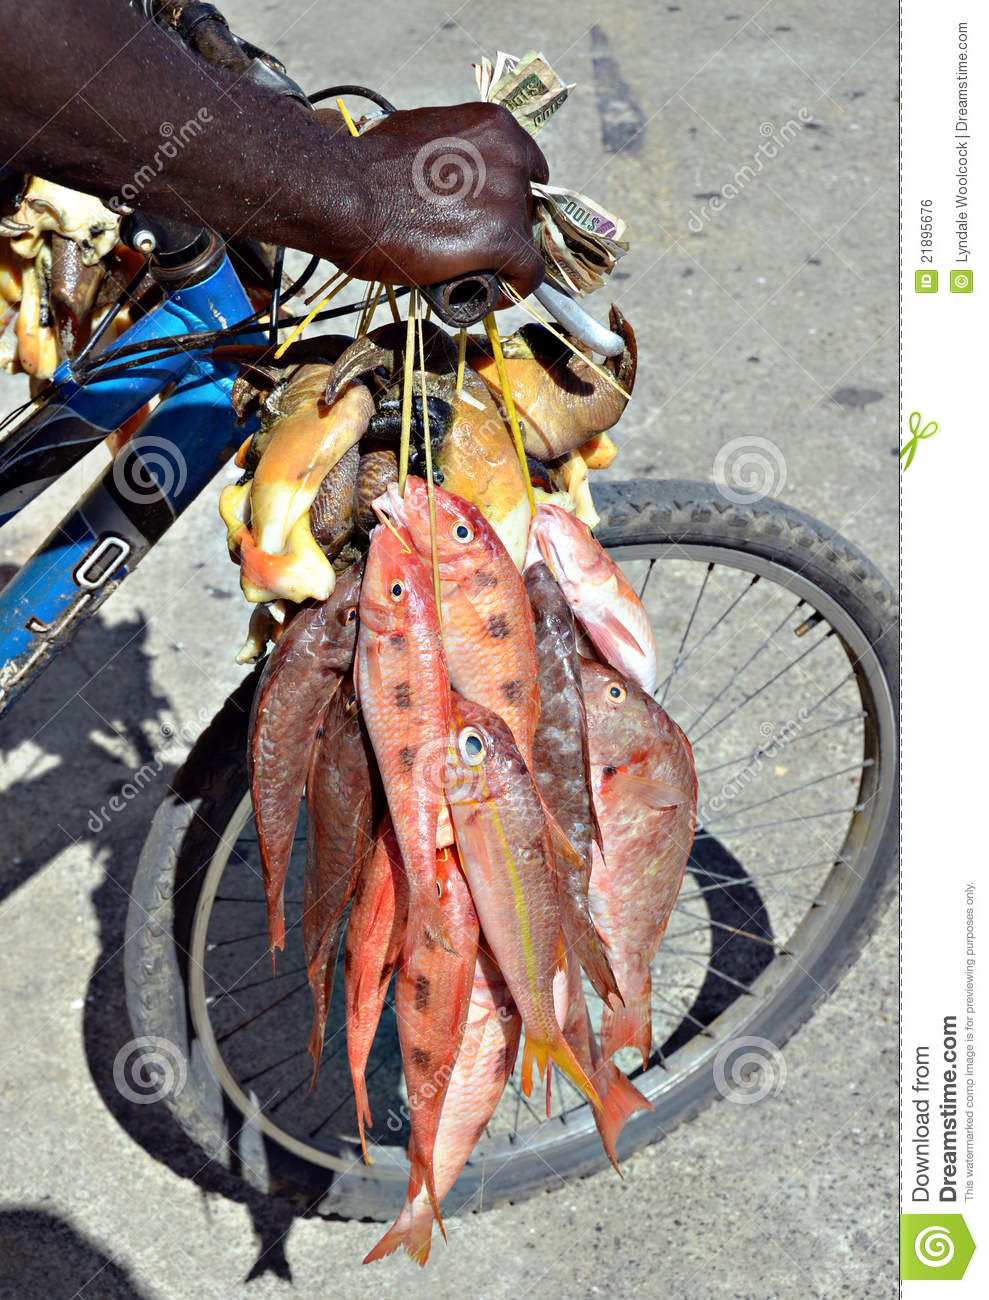 Fish for sale royalty free stock image image 21895676 for Stock fish for sale